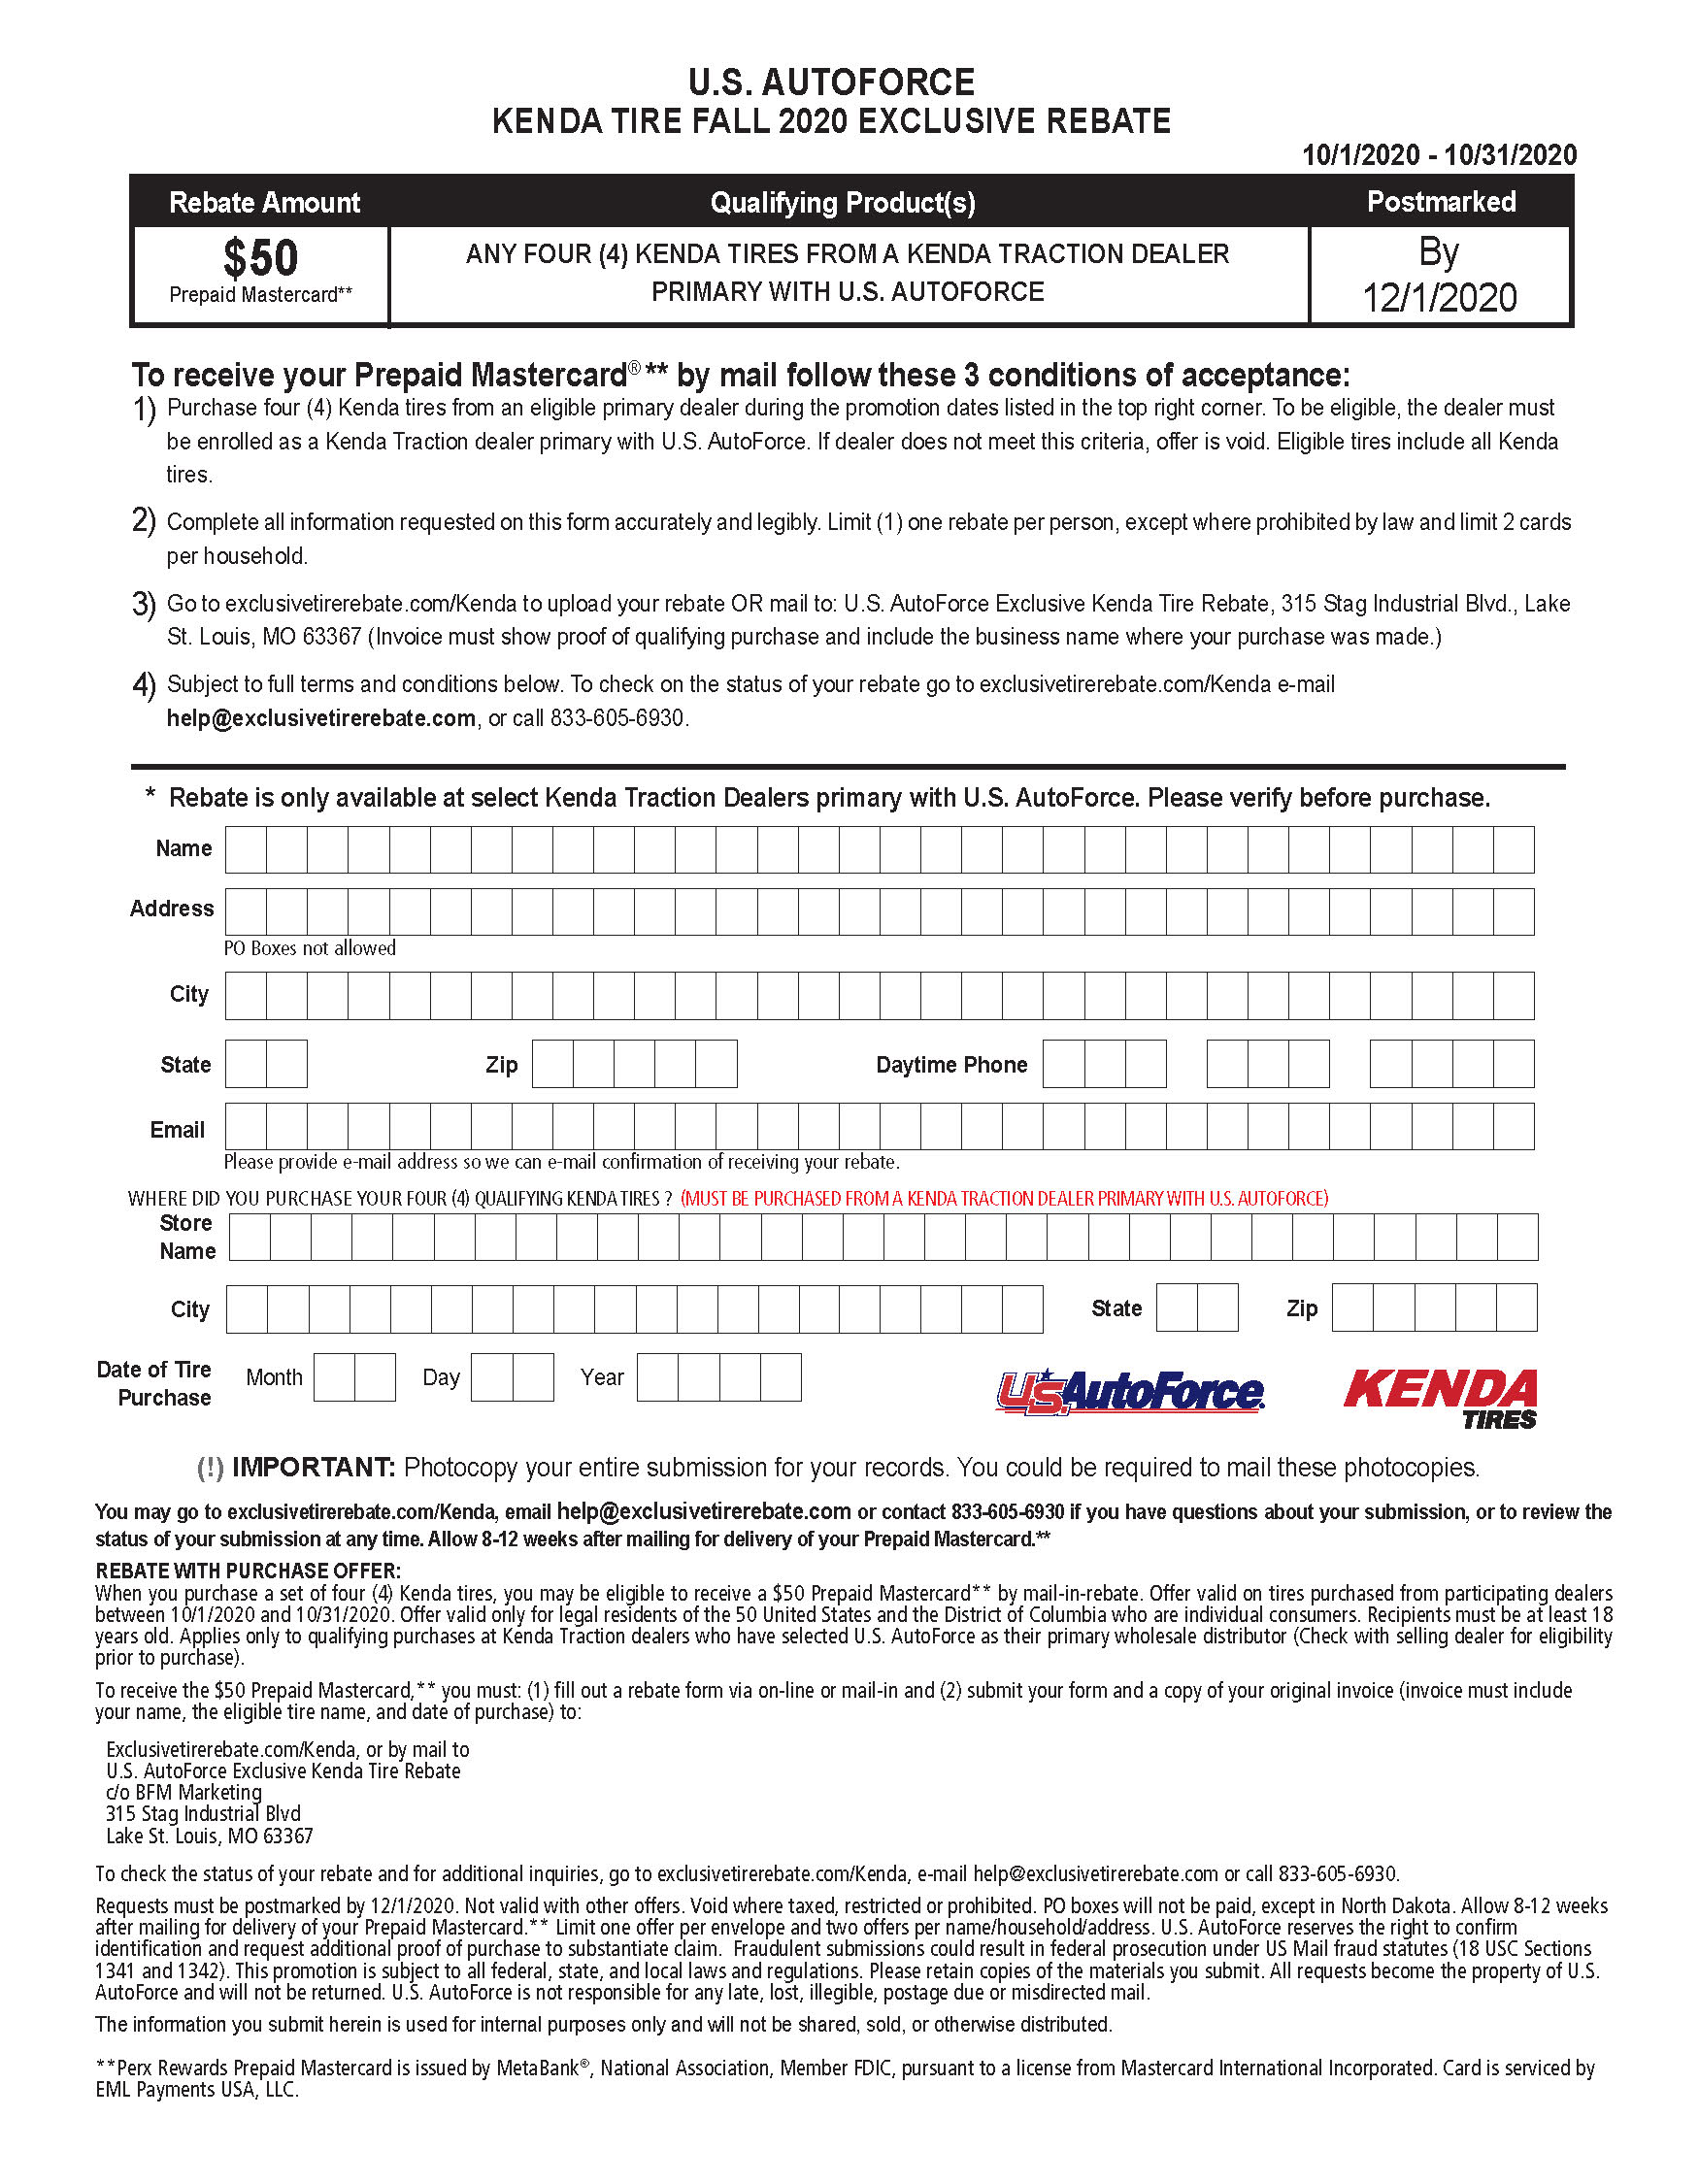 kenda tire rebate form